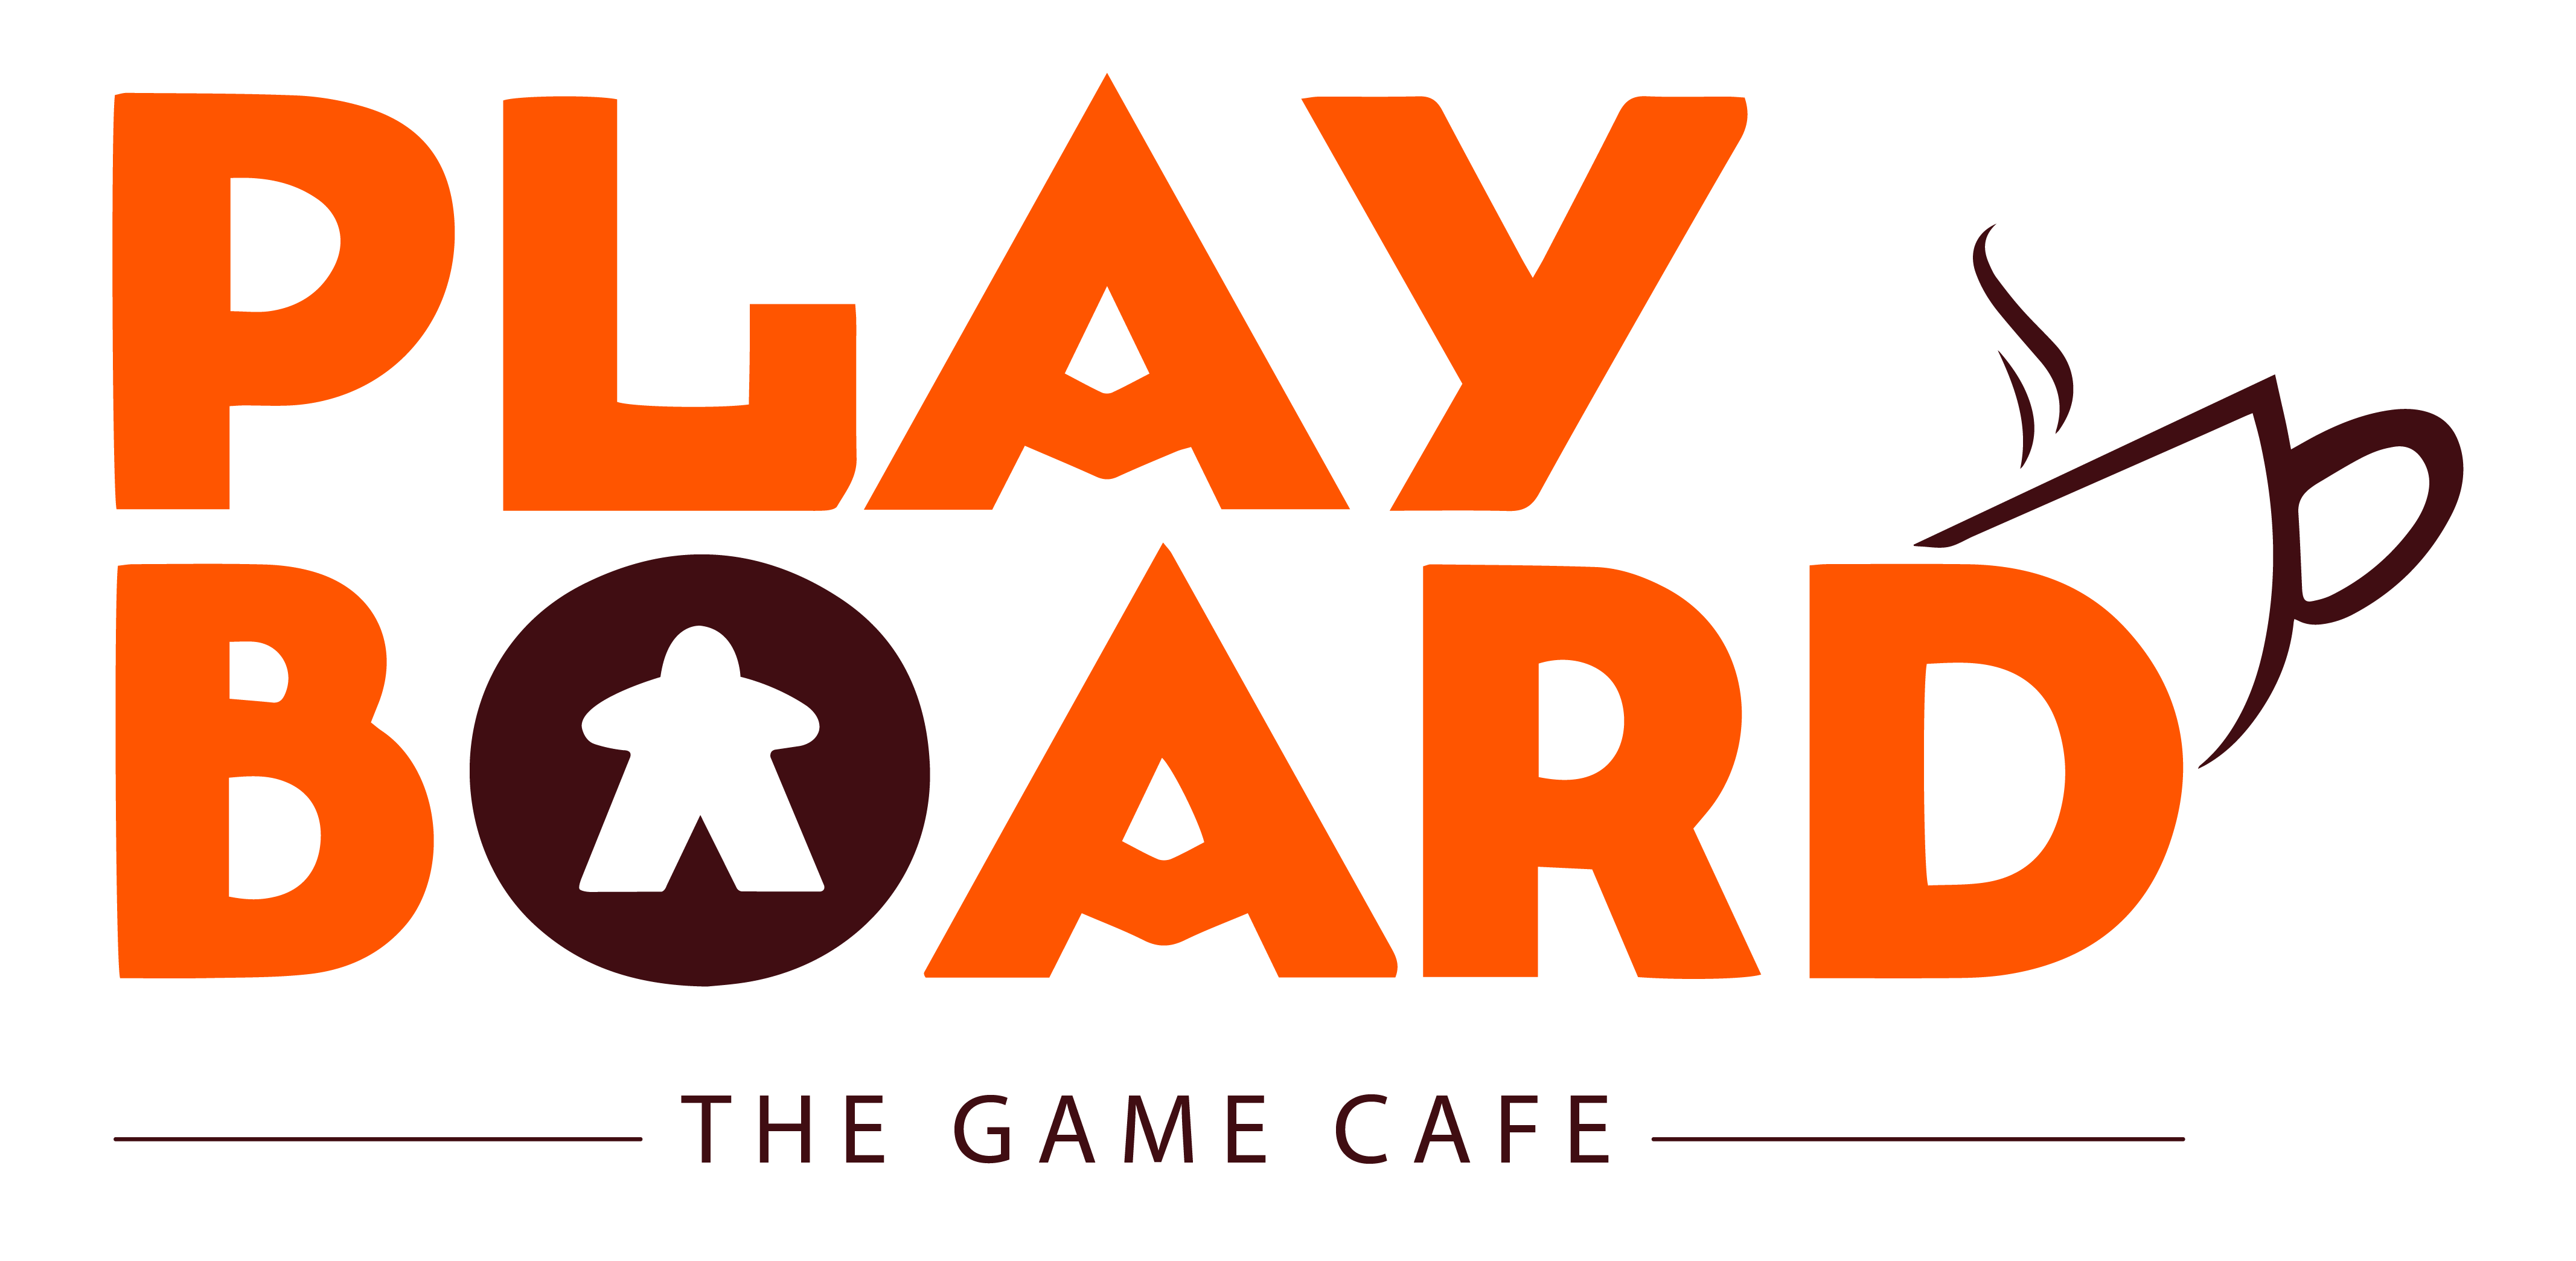 Playboard Cafe